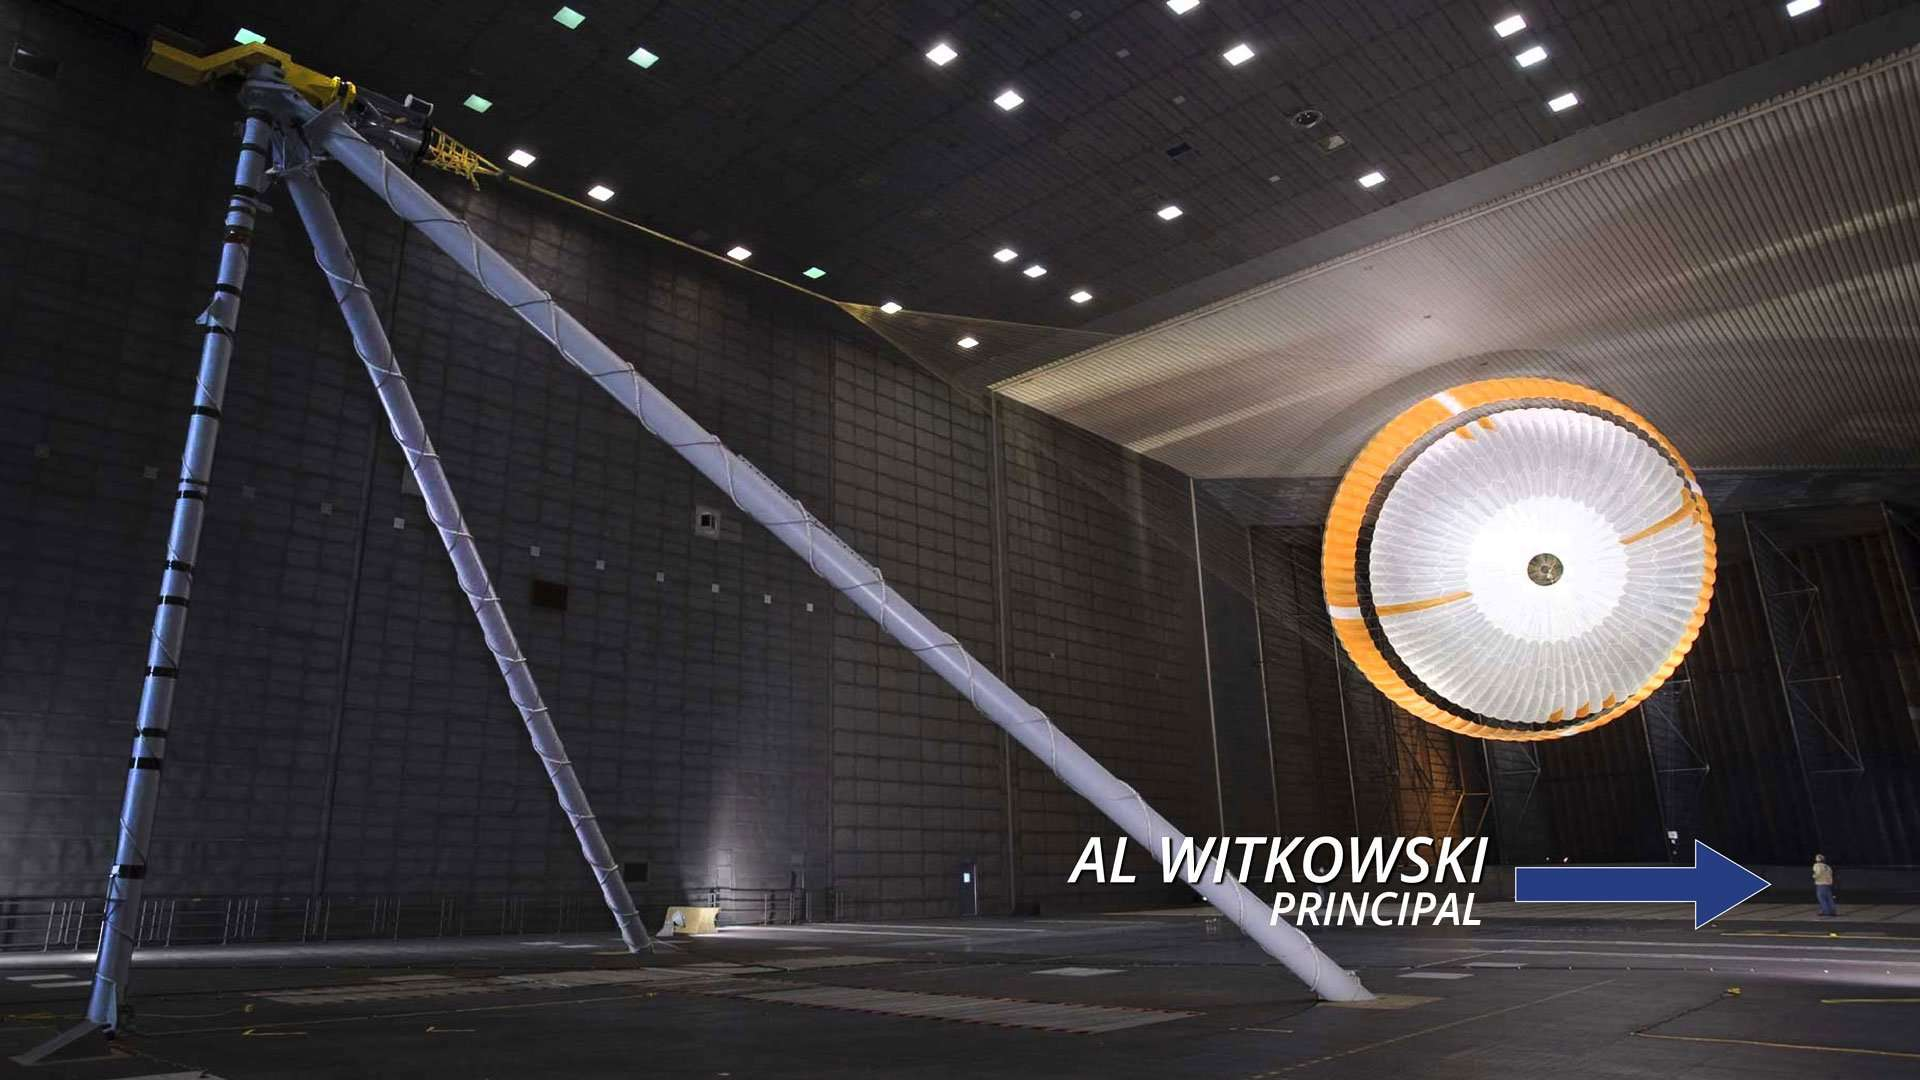 Al Witkowski of Katabasis Engineering LLC